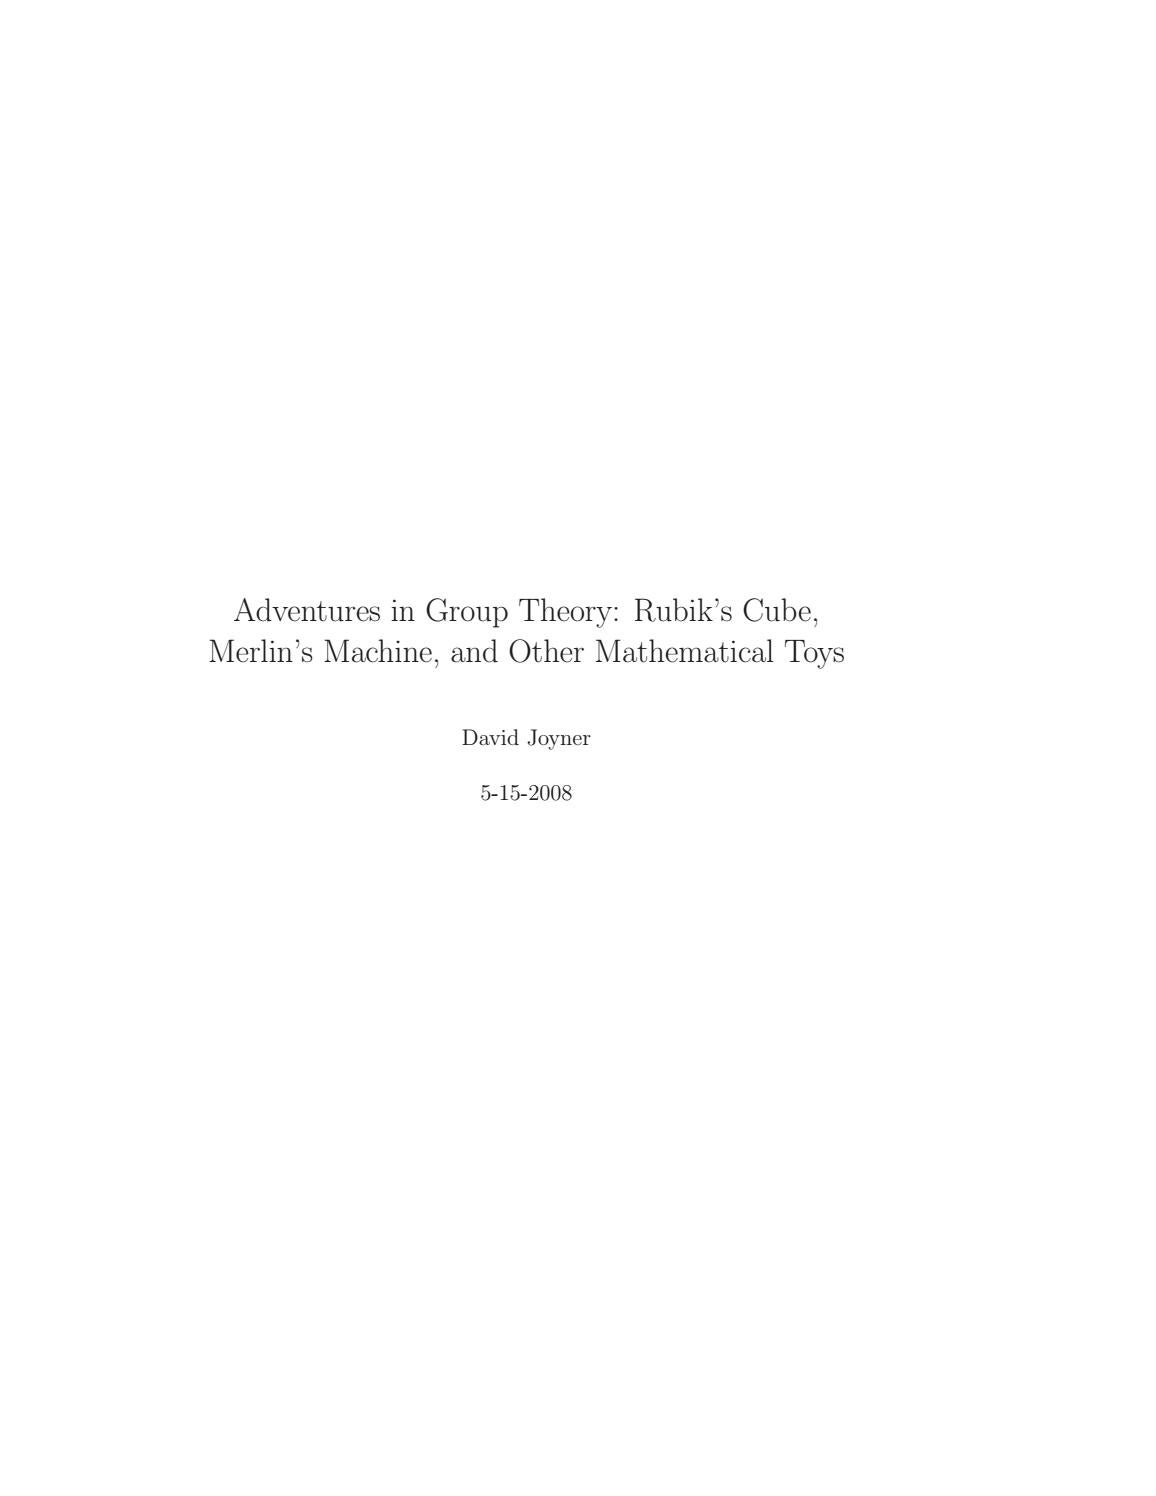 Adventures in Group Theory: Rubik's Cube, Merlin's Machine, and